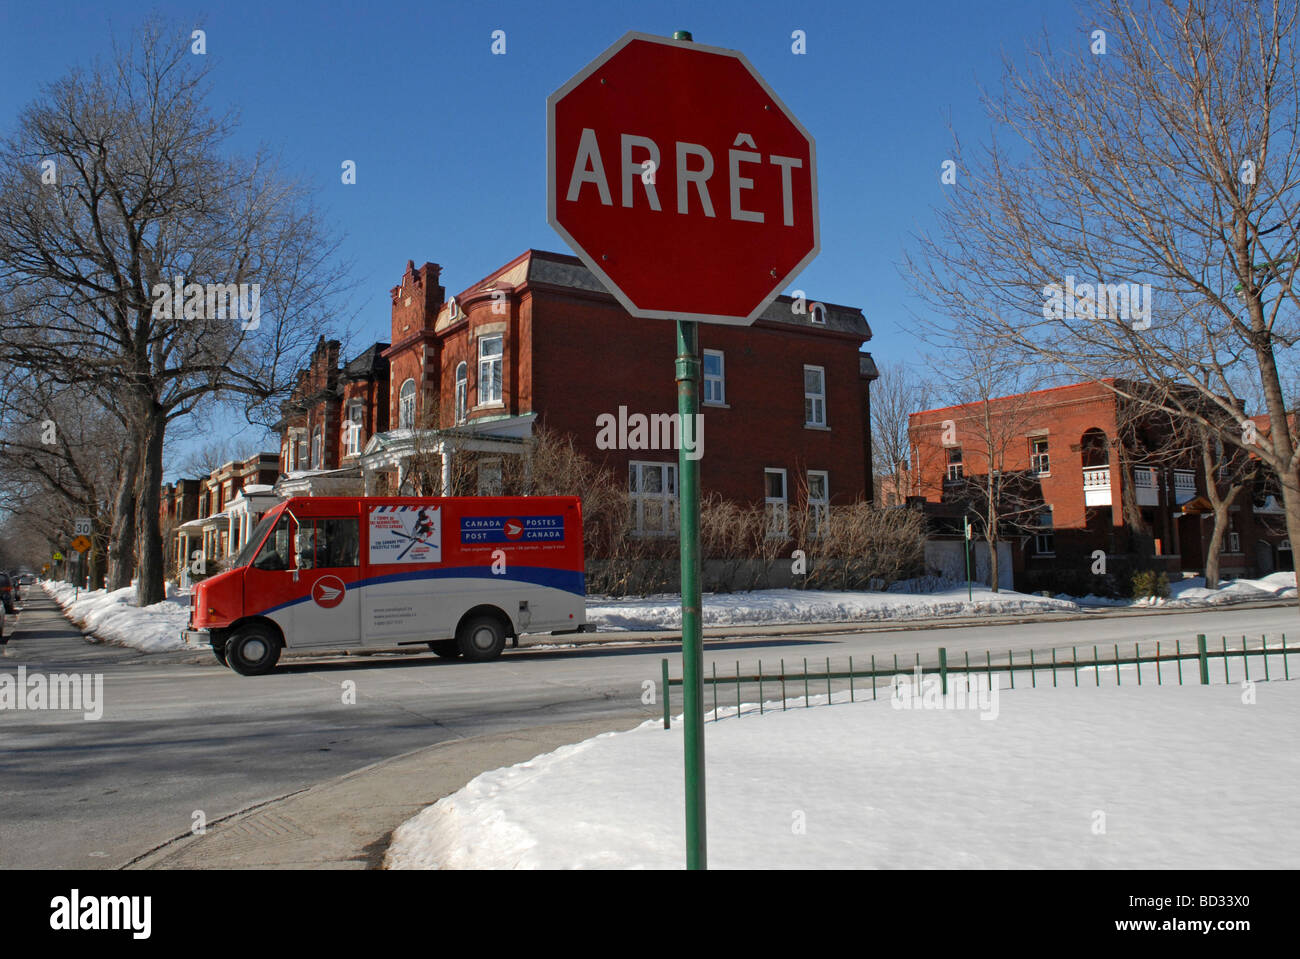 Canada Postal truck in front of french stop sign Montreal  Quebec Montreal - Stock Image